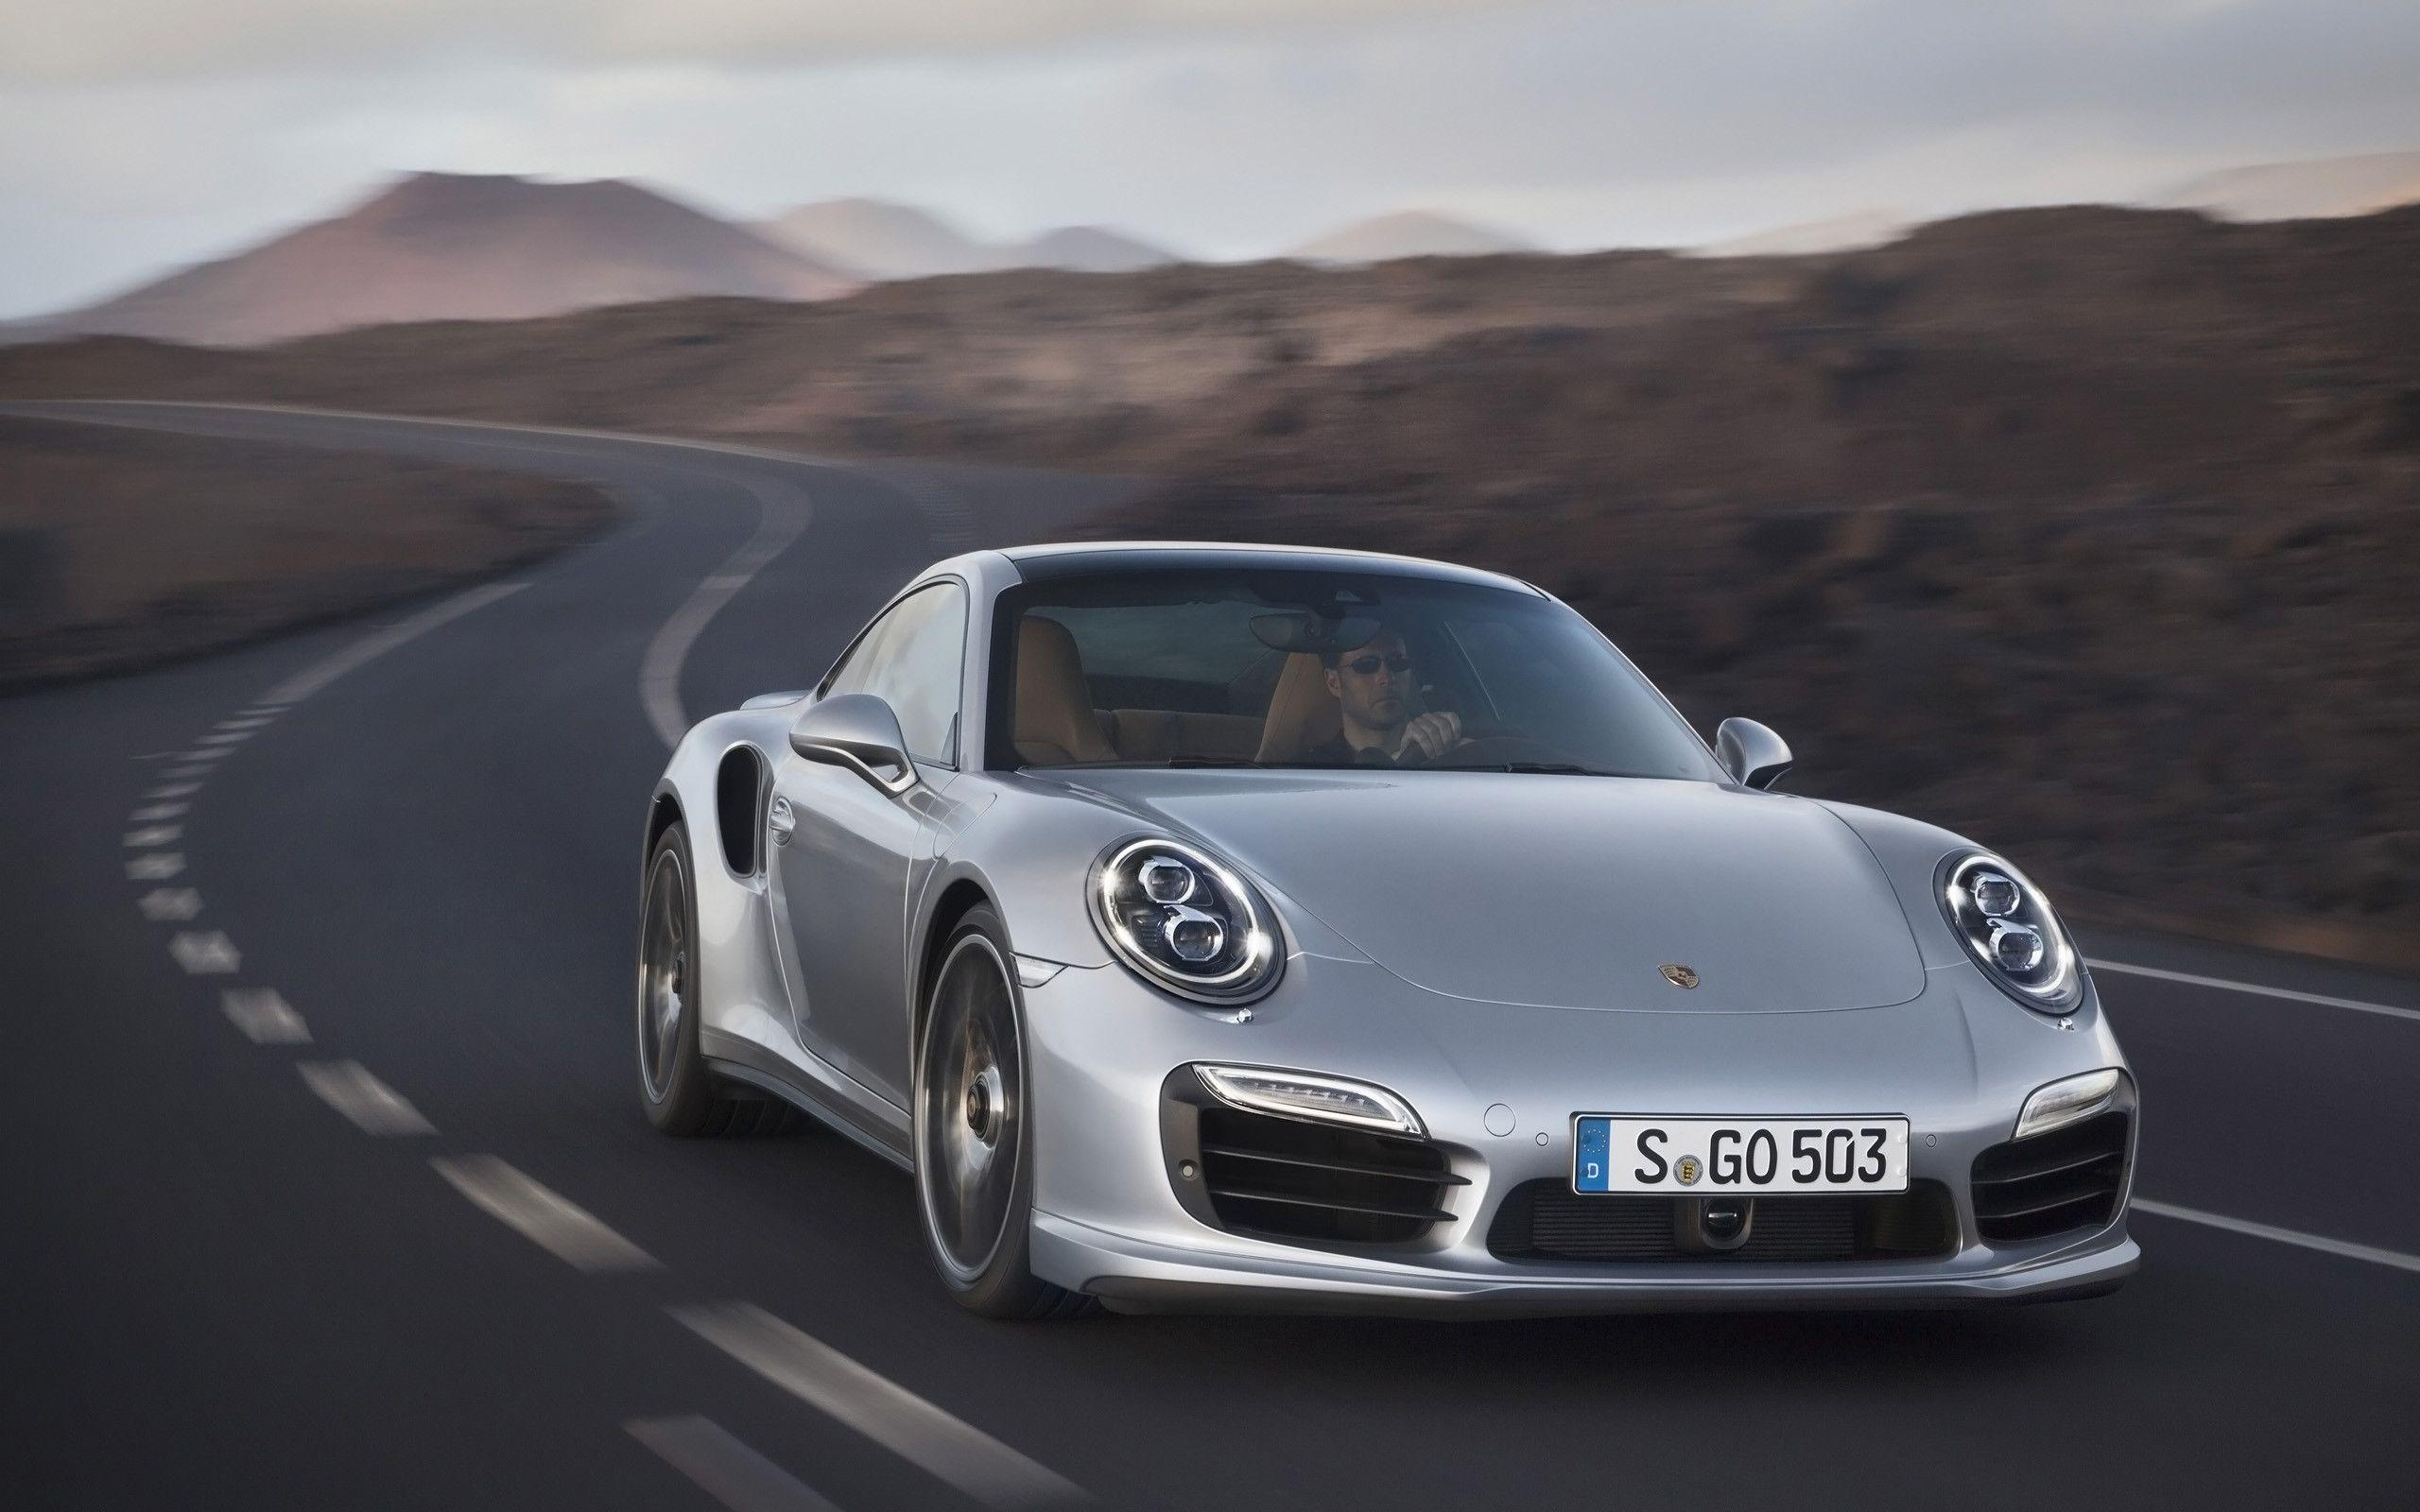 porsche 911 turbo wallpapers pictures cool wallpapers - 2014 Porsche 911 Turbo Wallpaper